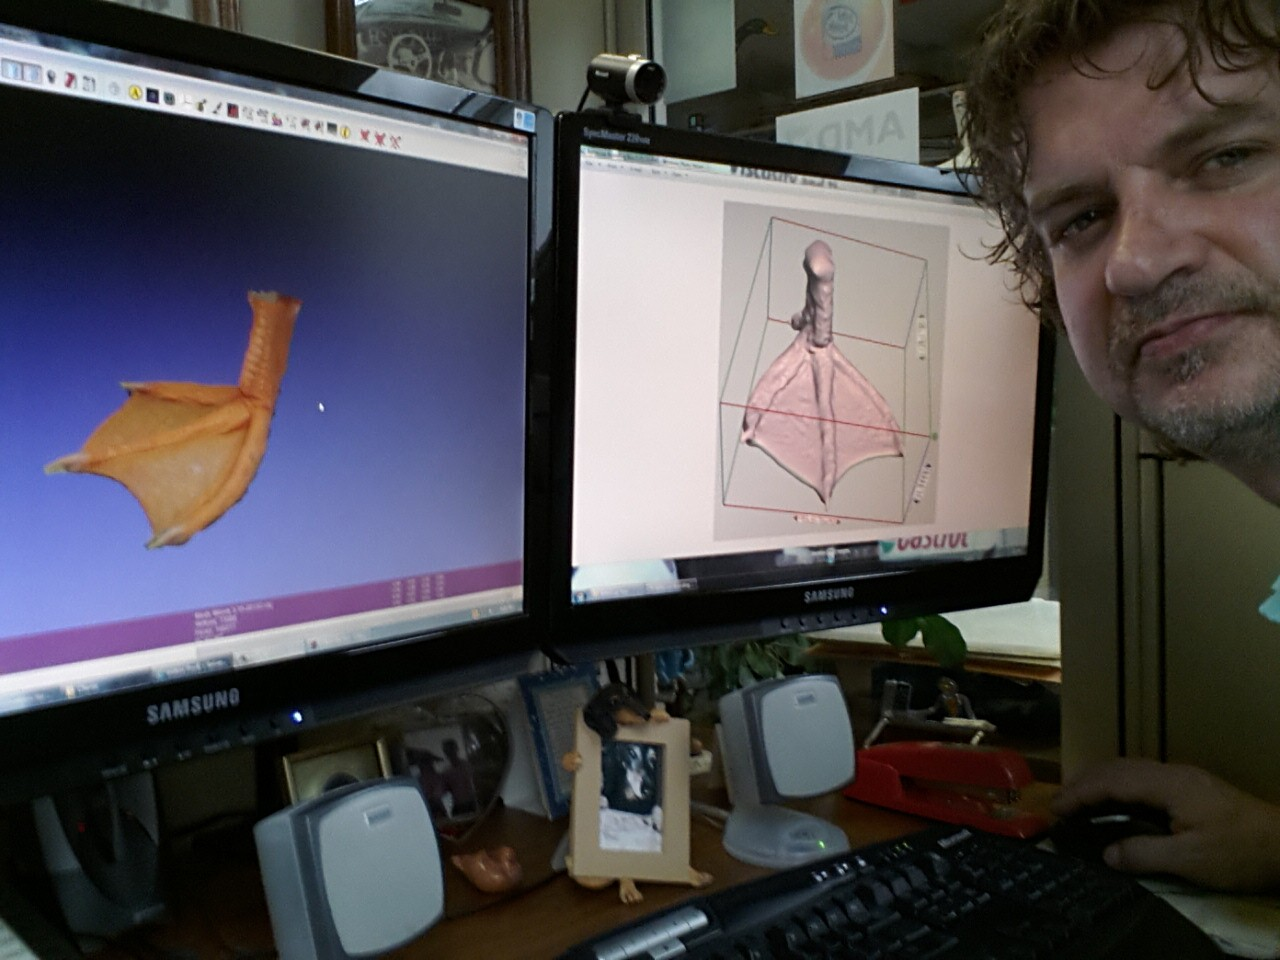 Photos: New foot for a disabled duck using 3D printing technology